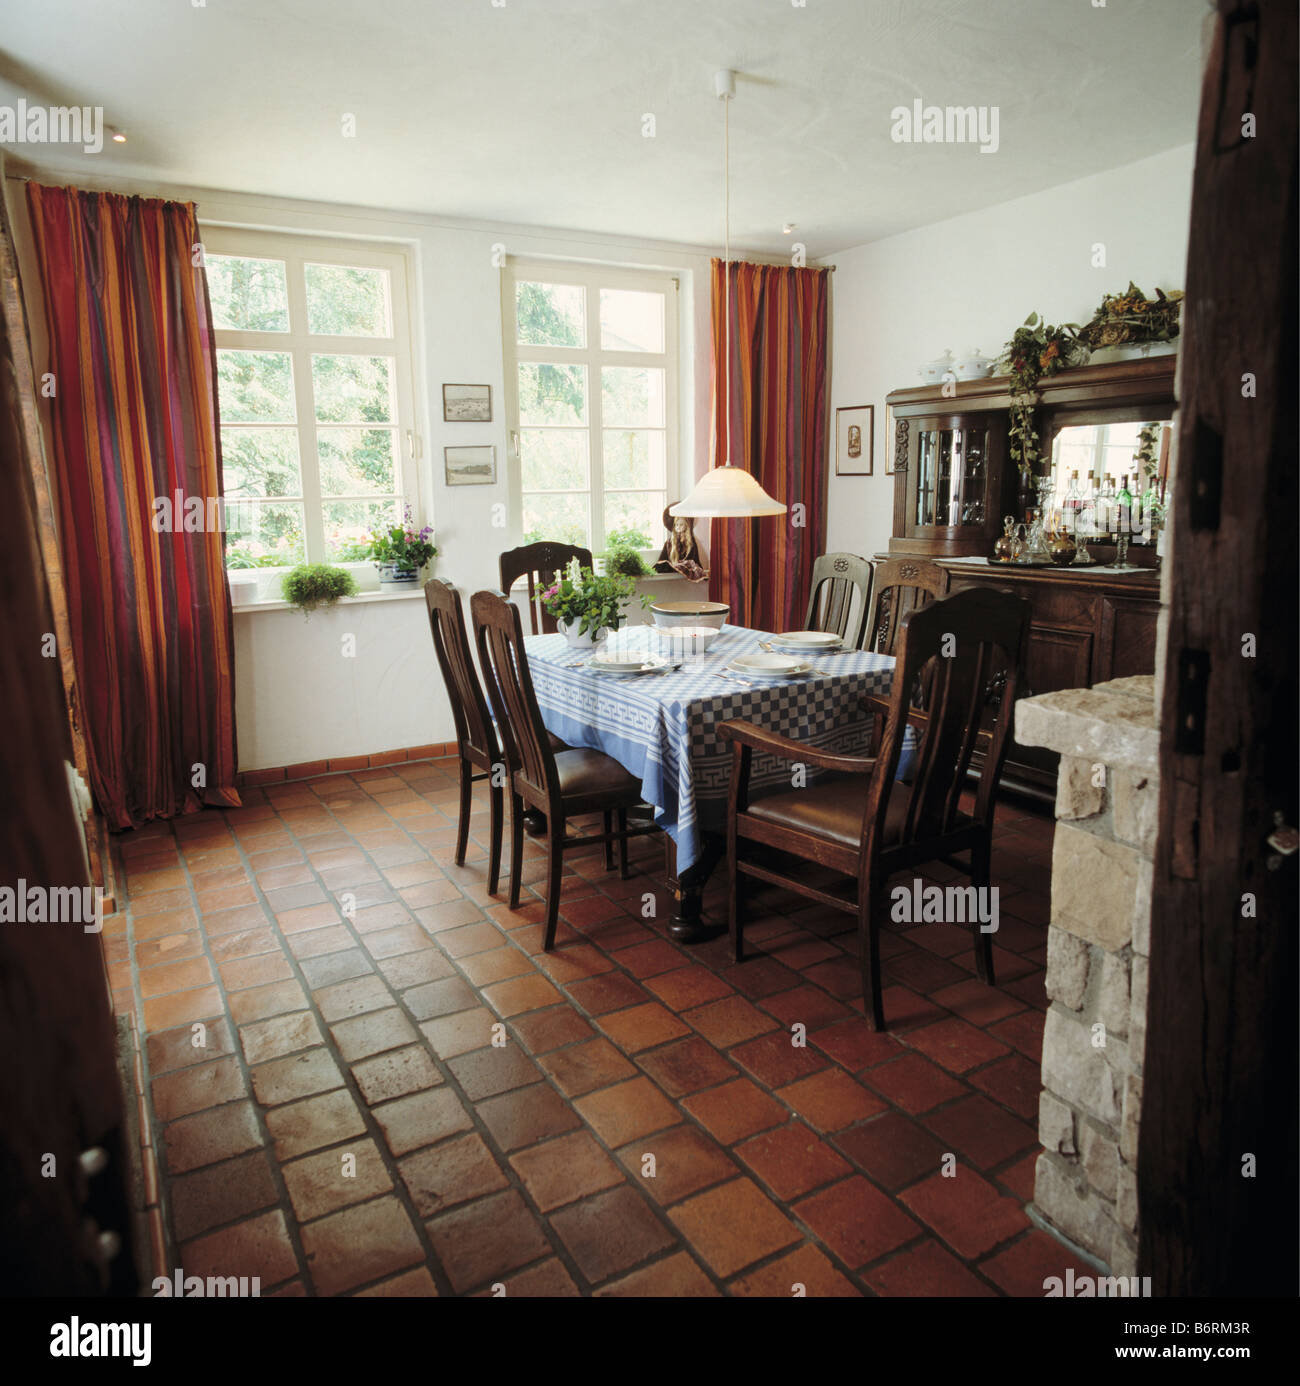 Stock Photo   Terracotta Tiled Floor In Country Dining Room With Red  Curtains And Table With Blue Cloth Part 95